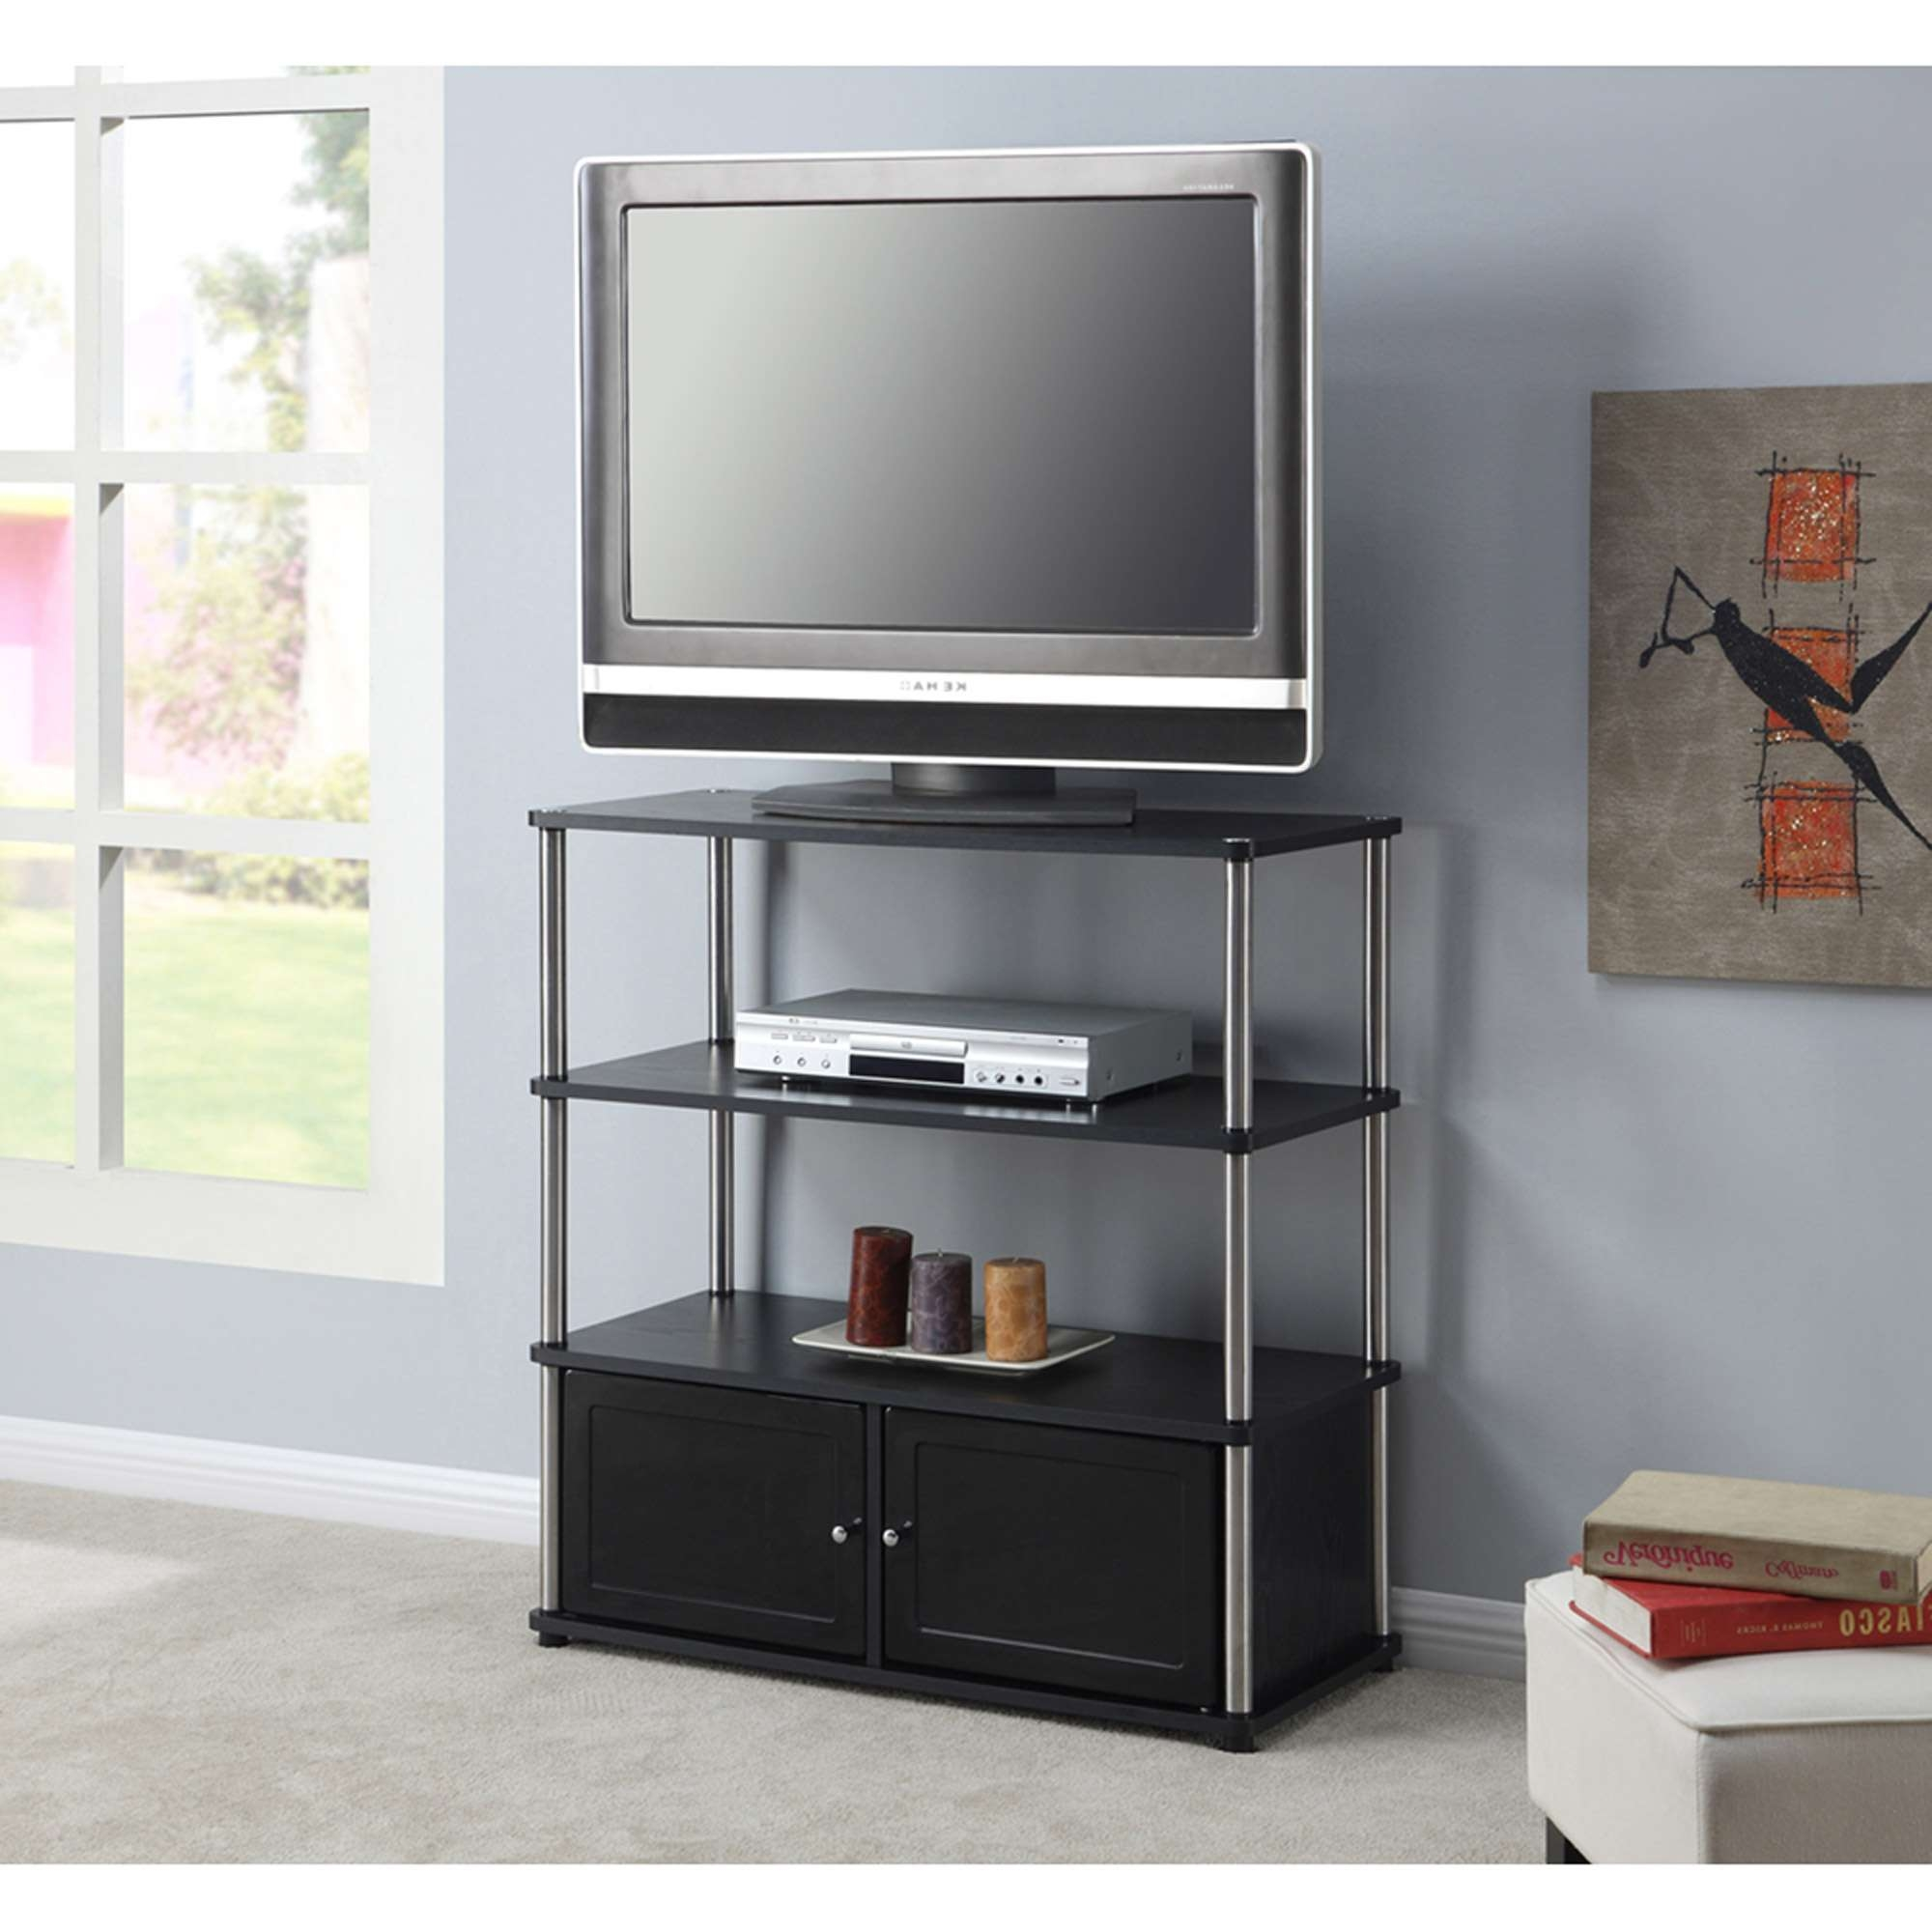 Tv Stand : 40 Stunning Small Black Tv Stand Photo Inspirations Inside Small Black Tv Cabinets (View 17 of 20)